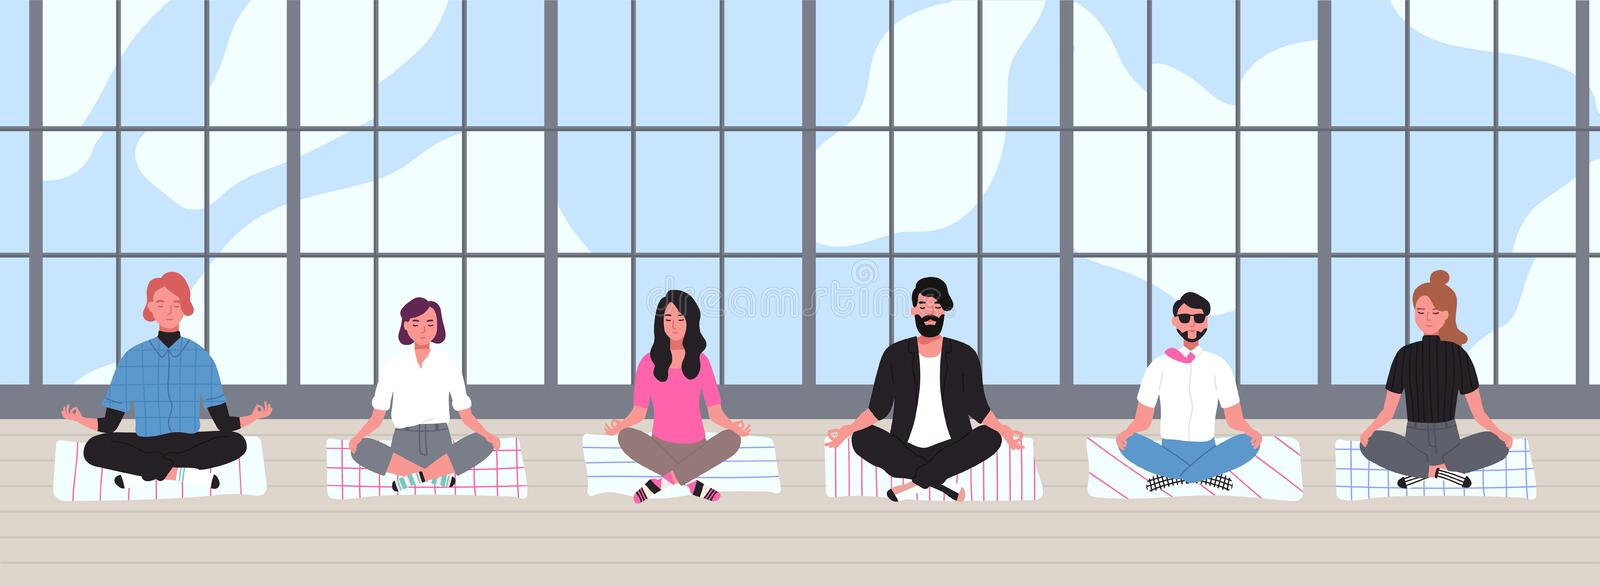 Office workers dressed in smart clothes sit with crossed legs and meditate against panoramic window on background royalty free illustration